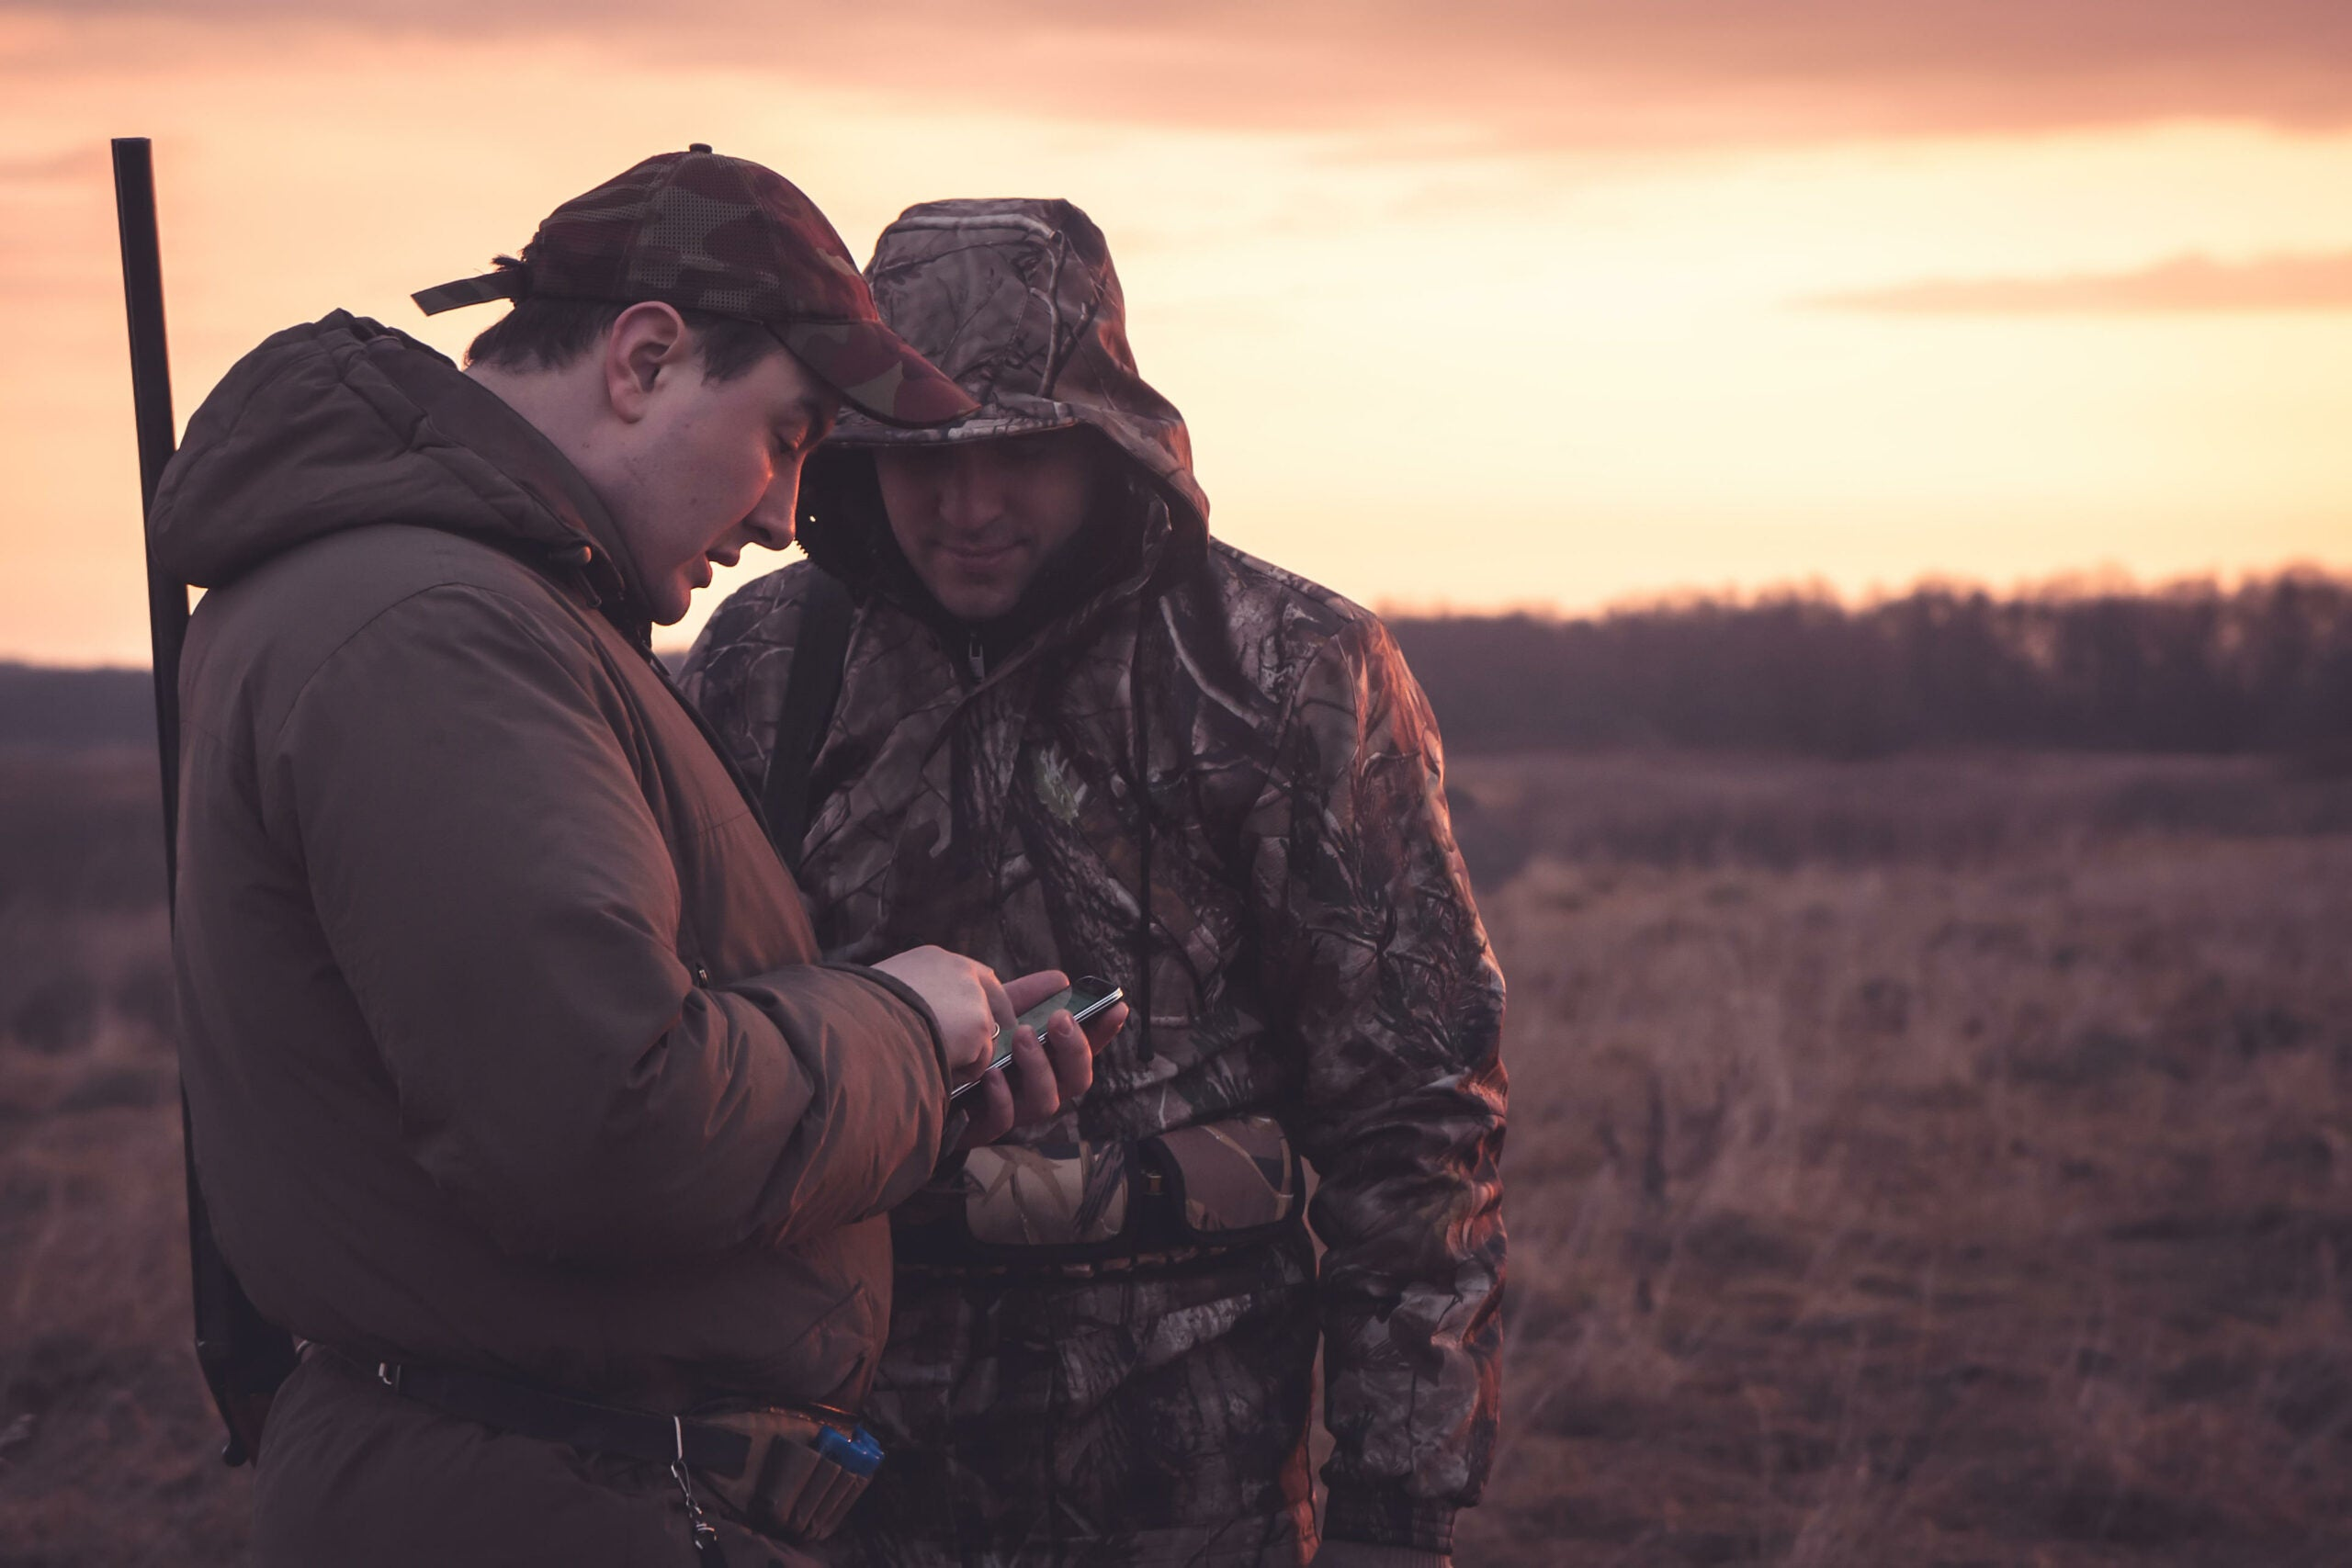 Hunters spot their position via mobile phone  in rural field during hunting season